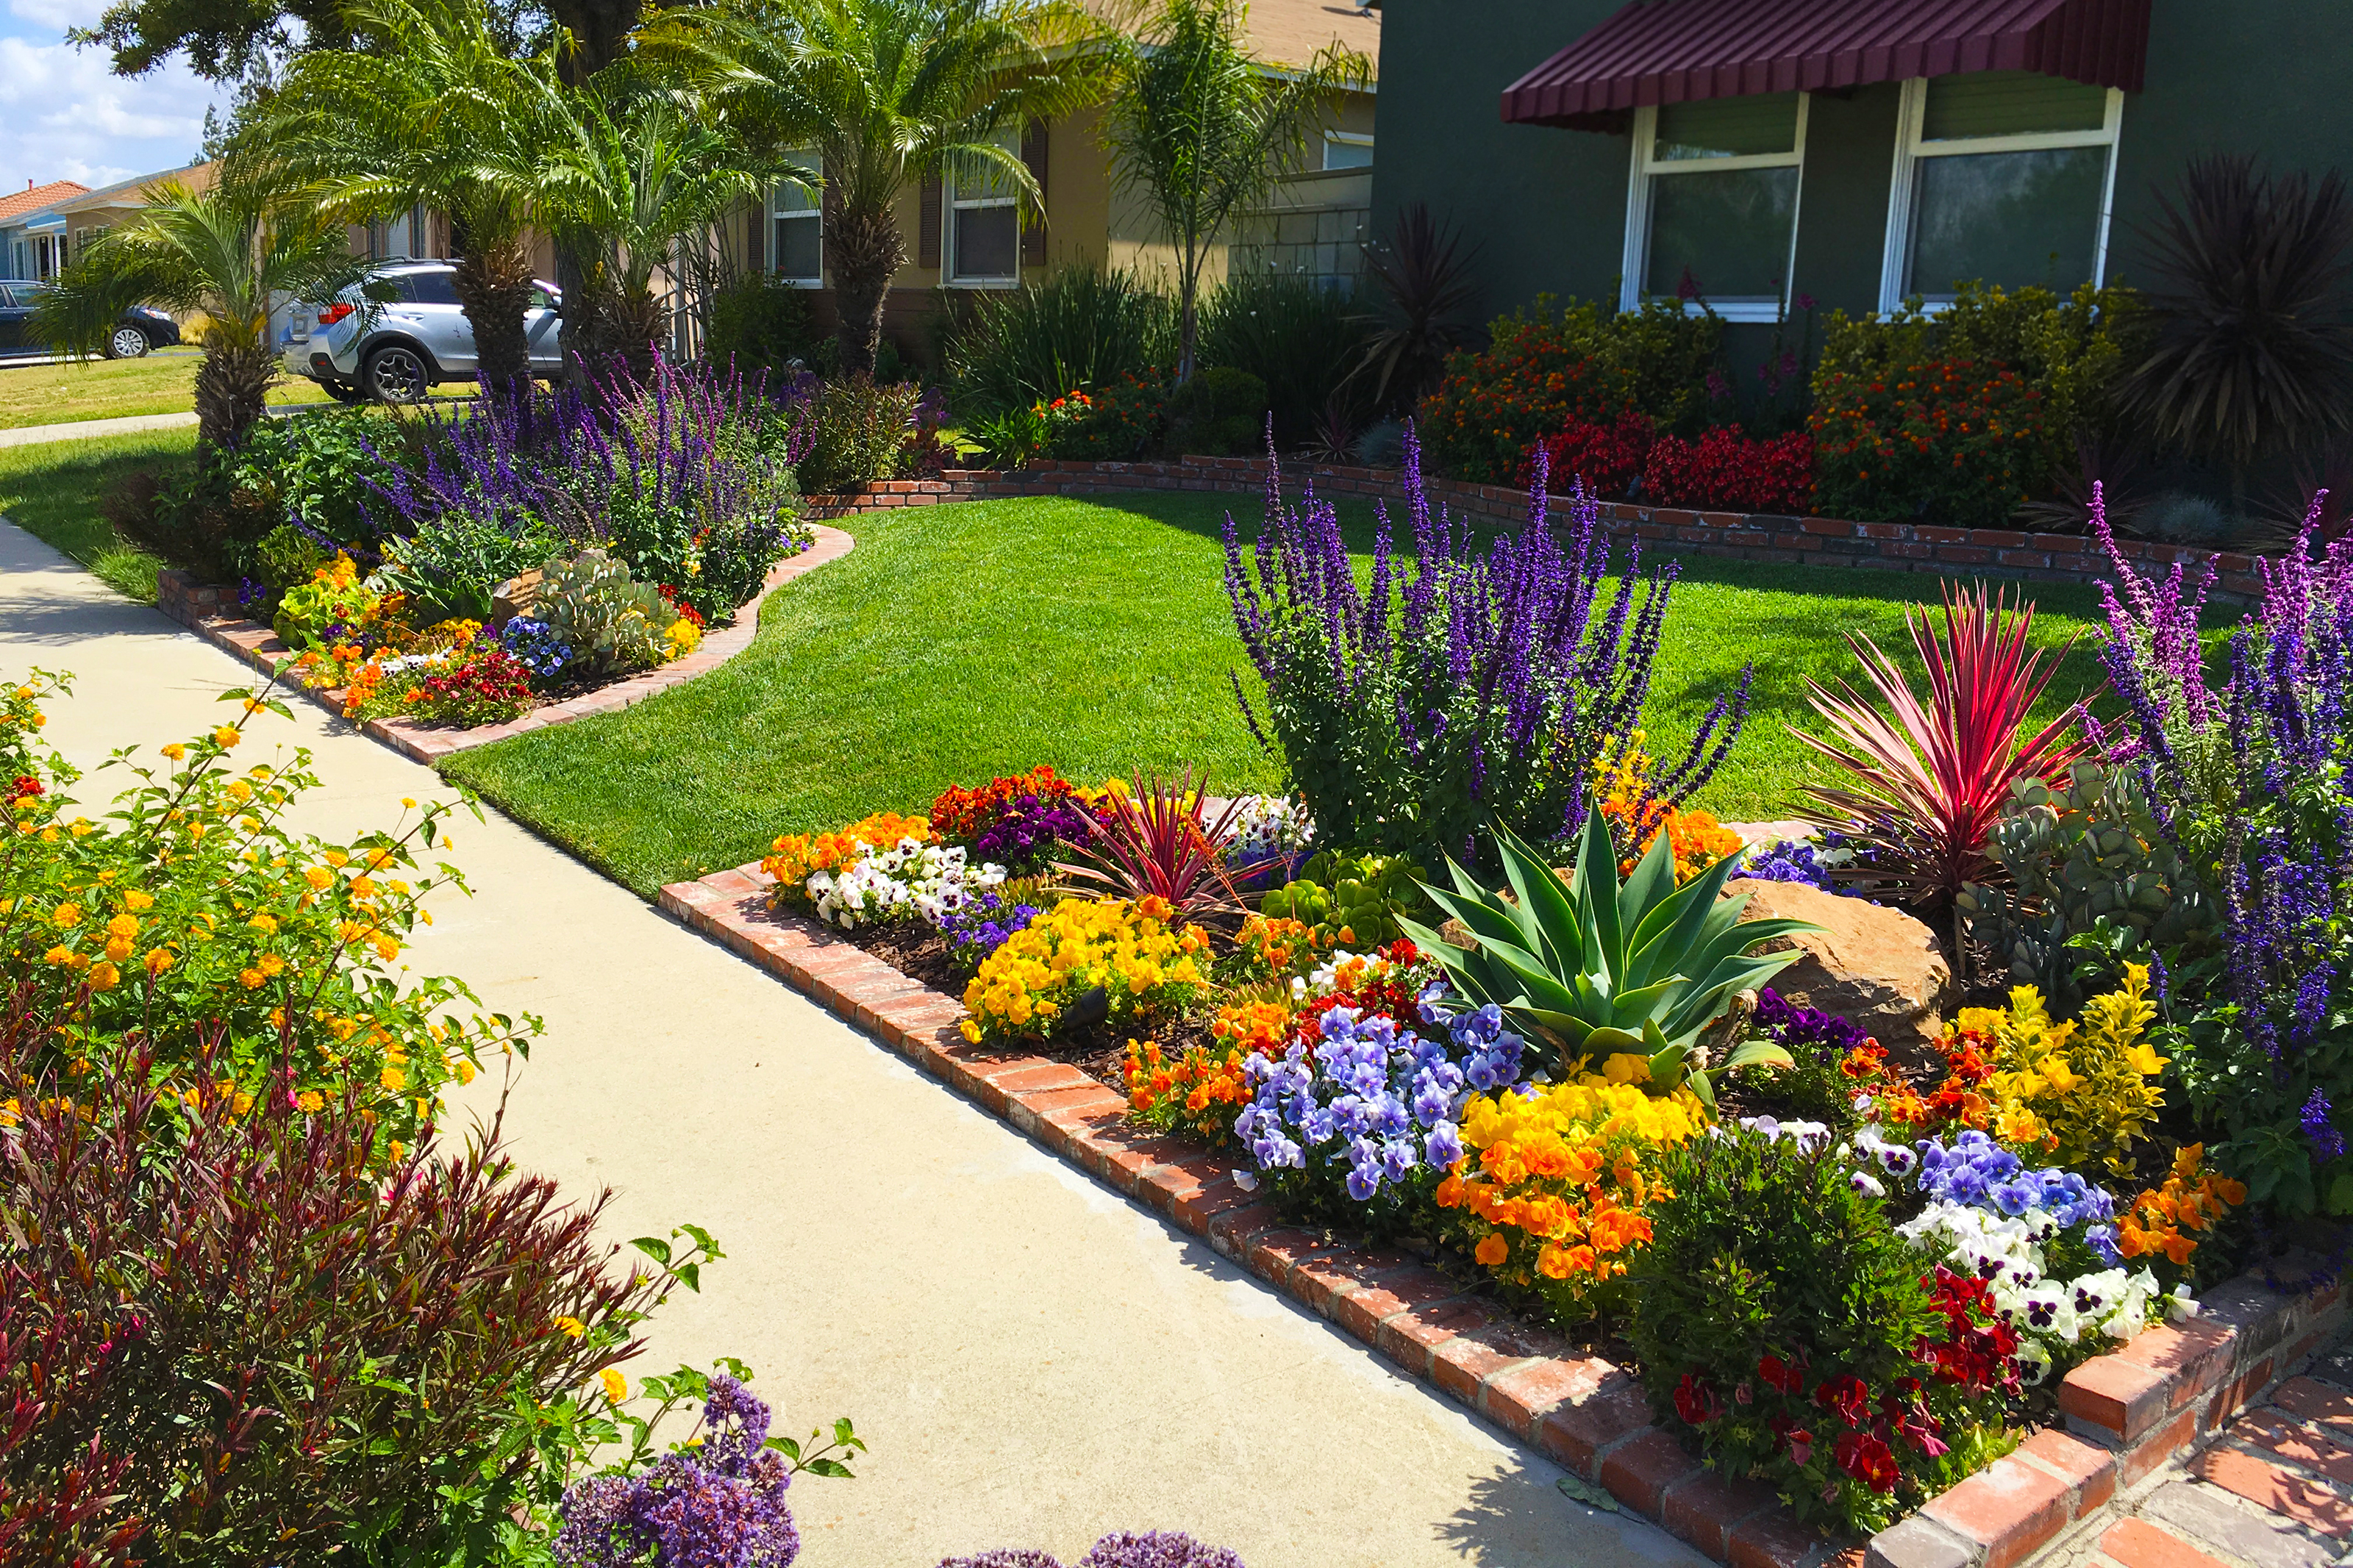 Front Yard Landscaping Ideas For Curb Appeal | HouseLogic